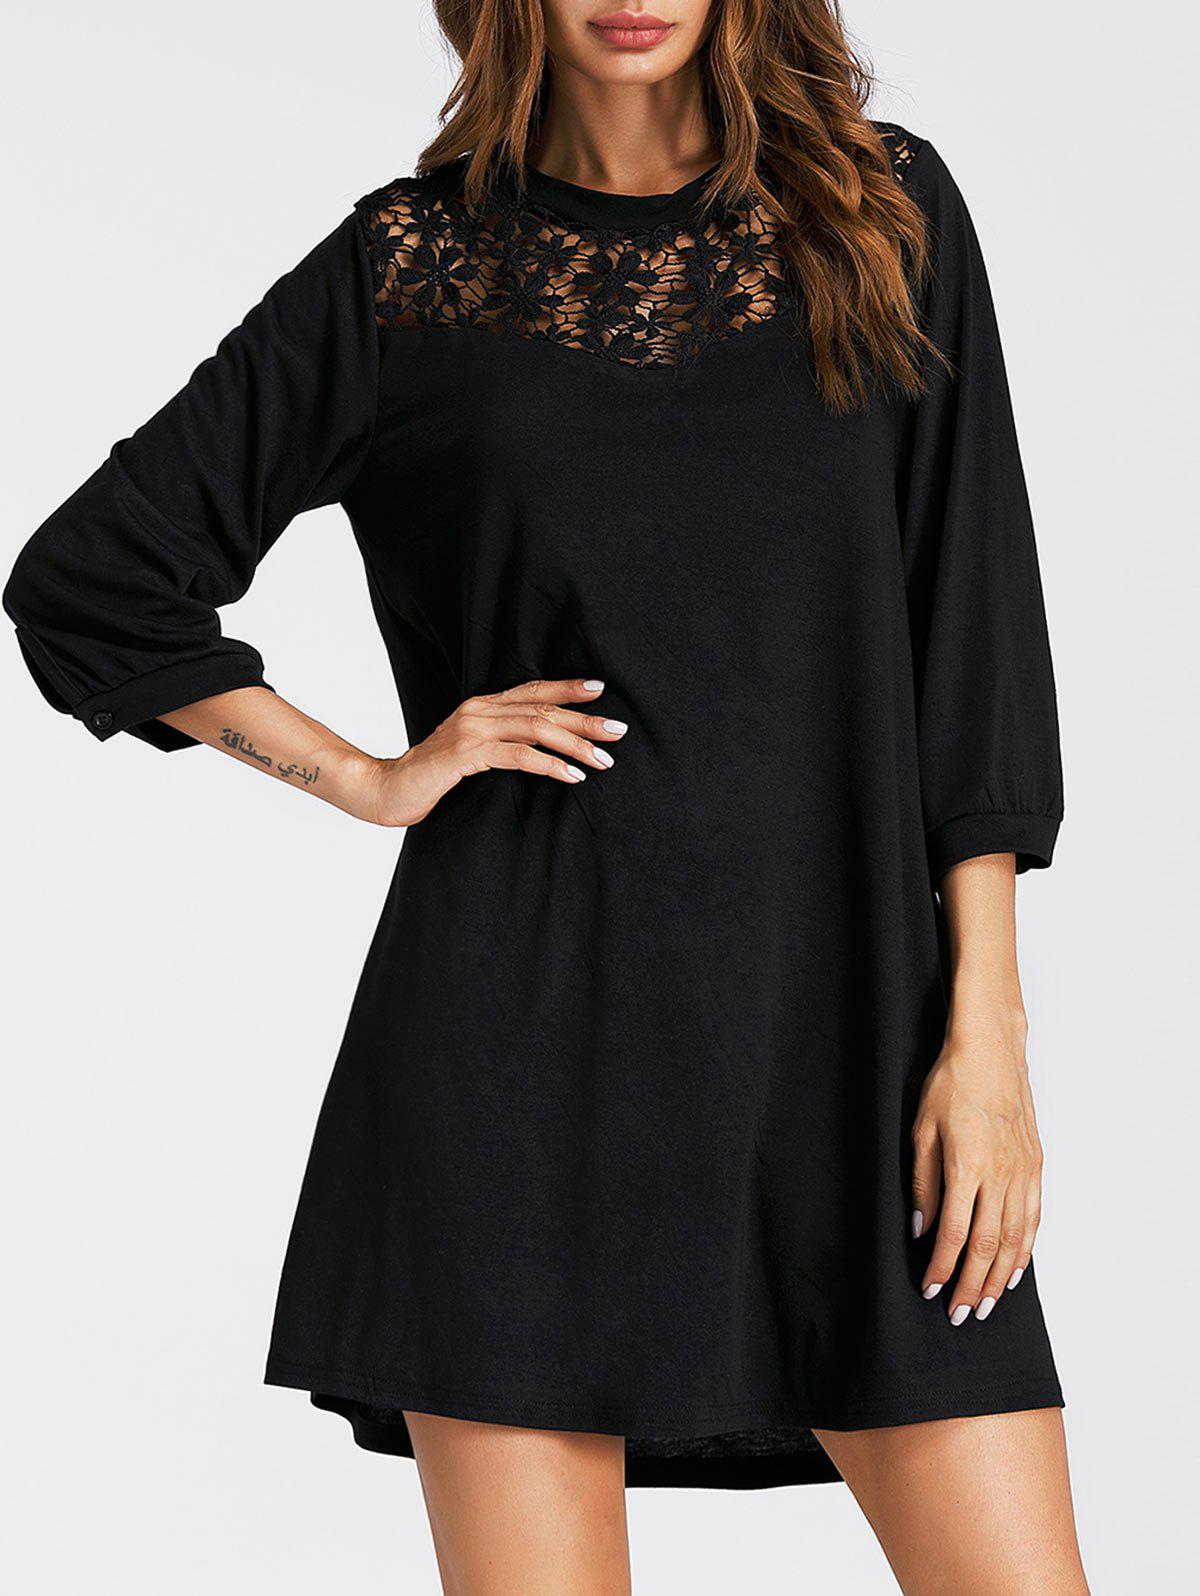 Fancy Lace Panel Three Quarter Sleeve Mini Dress